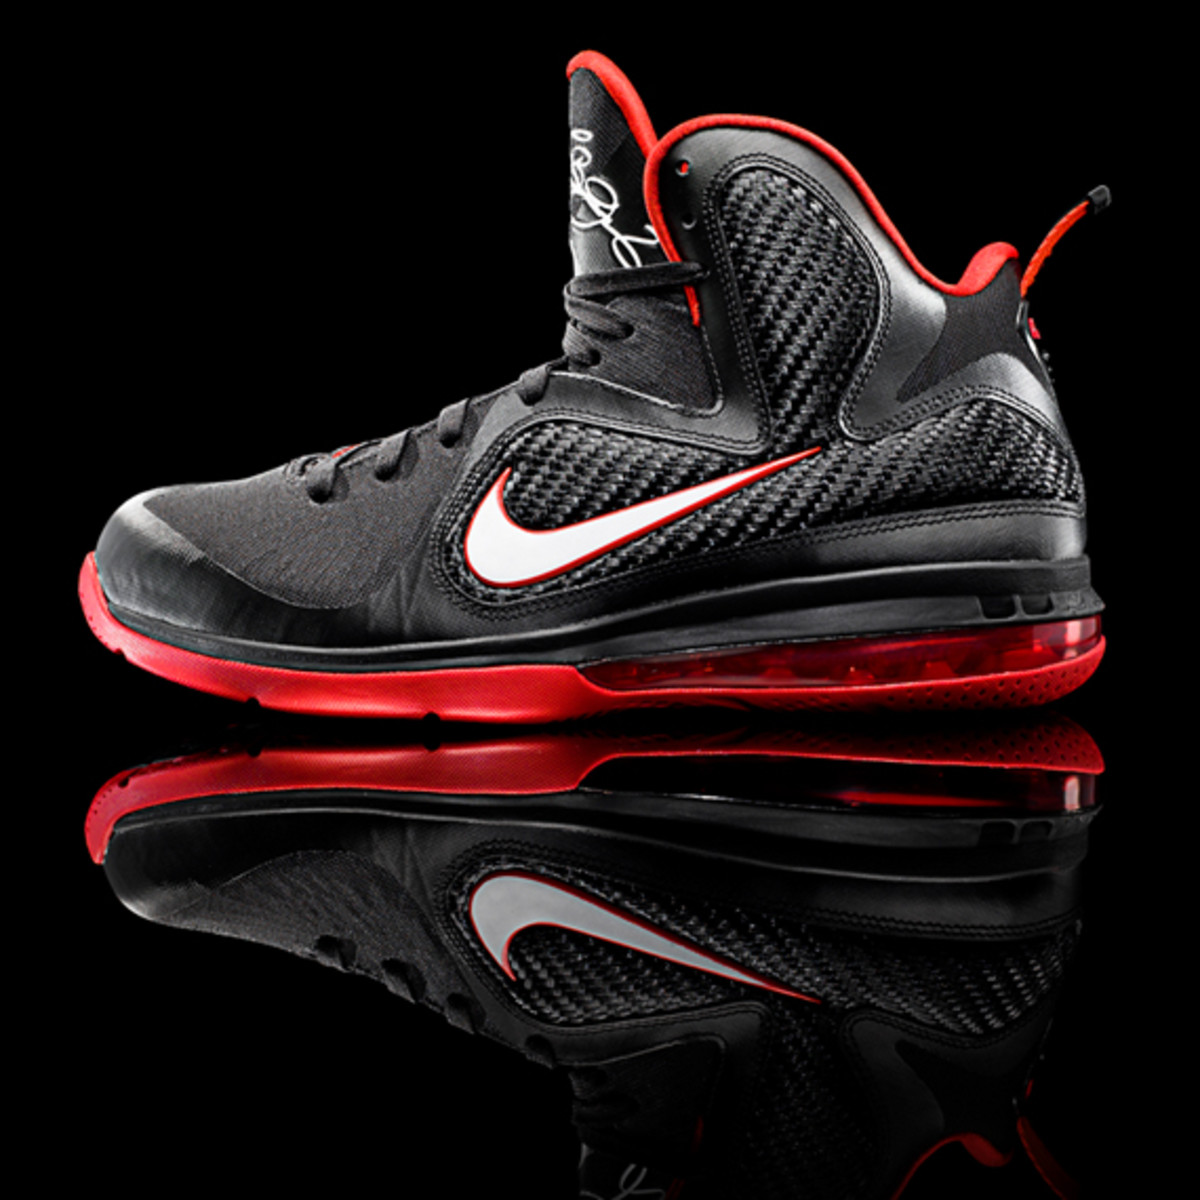 nike-lebron-9-detailed-look-01